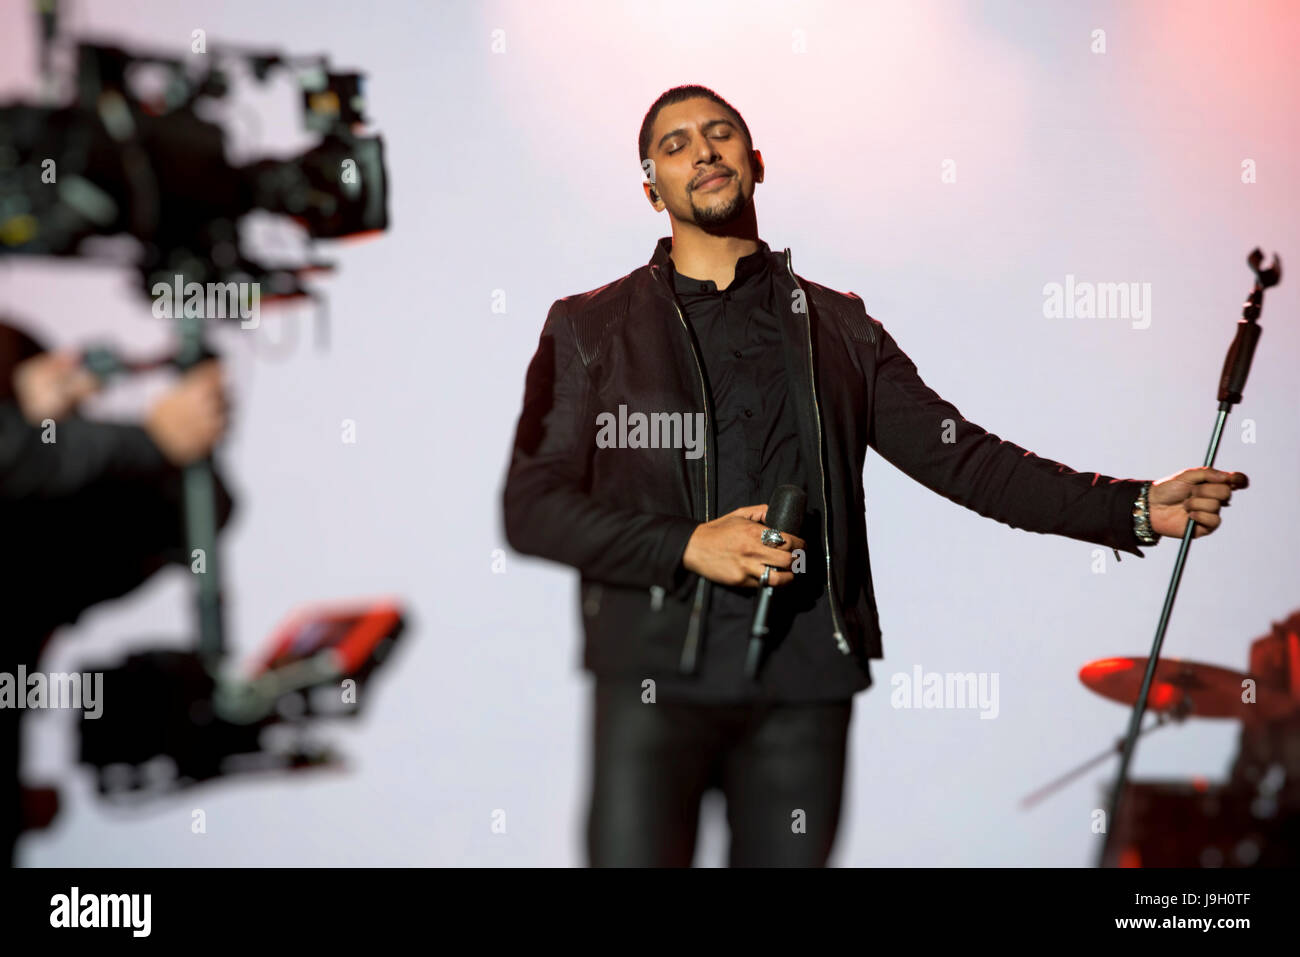 Andreas Bourani auf der ESC After Show Party Stockbild